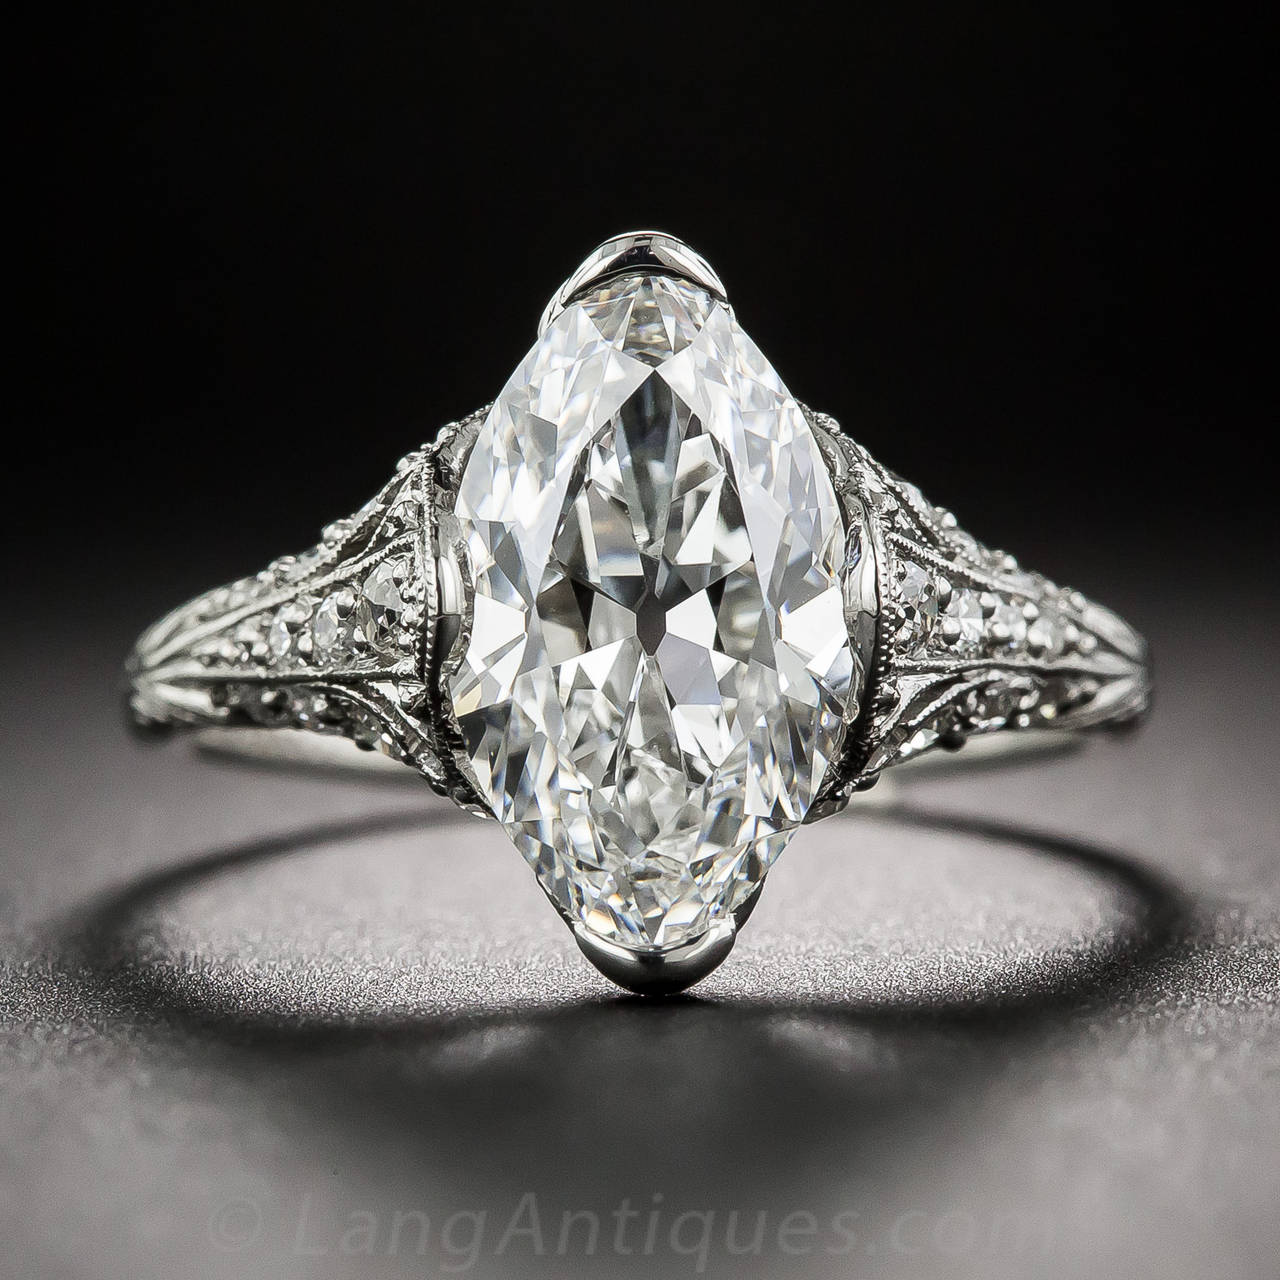 old edwardian vintage engagement rings eragem euro ring style carat antique deco diamond art platinum